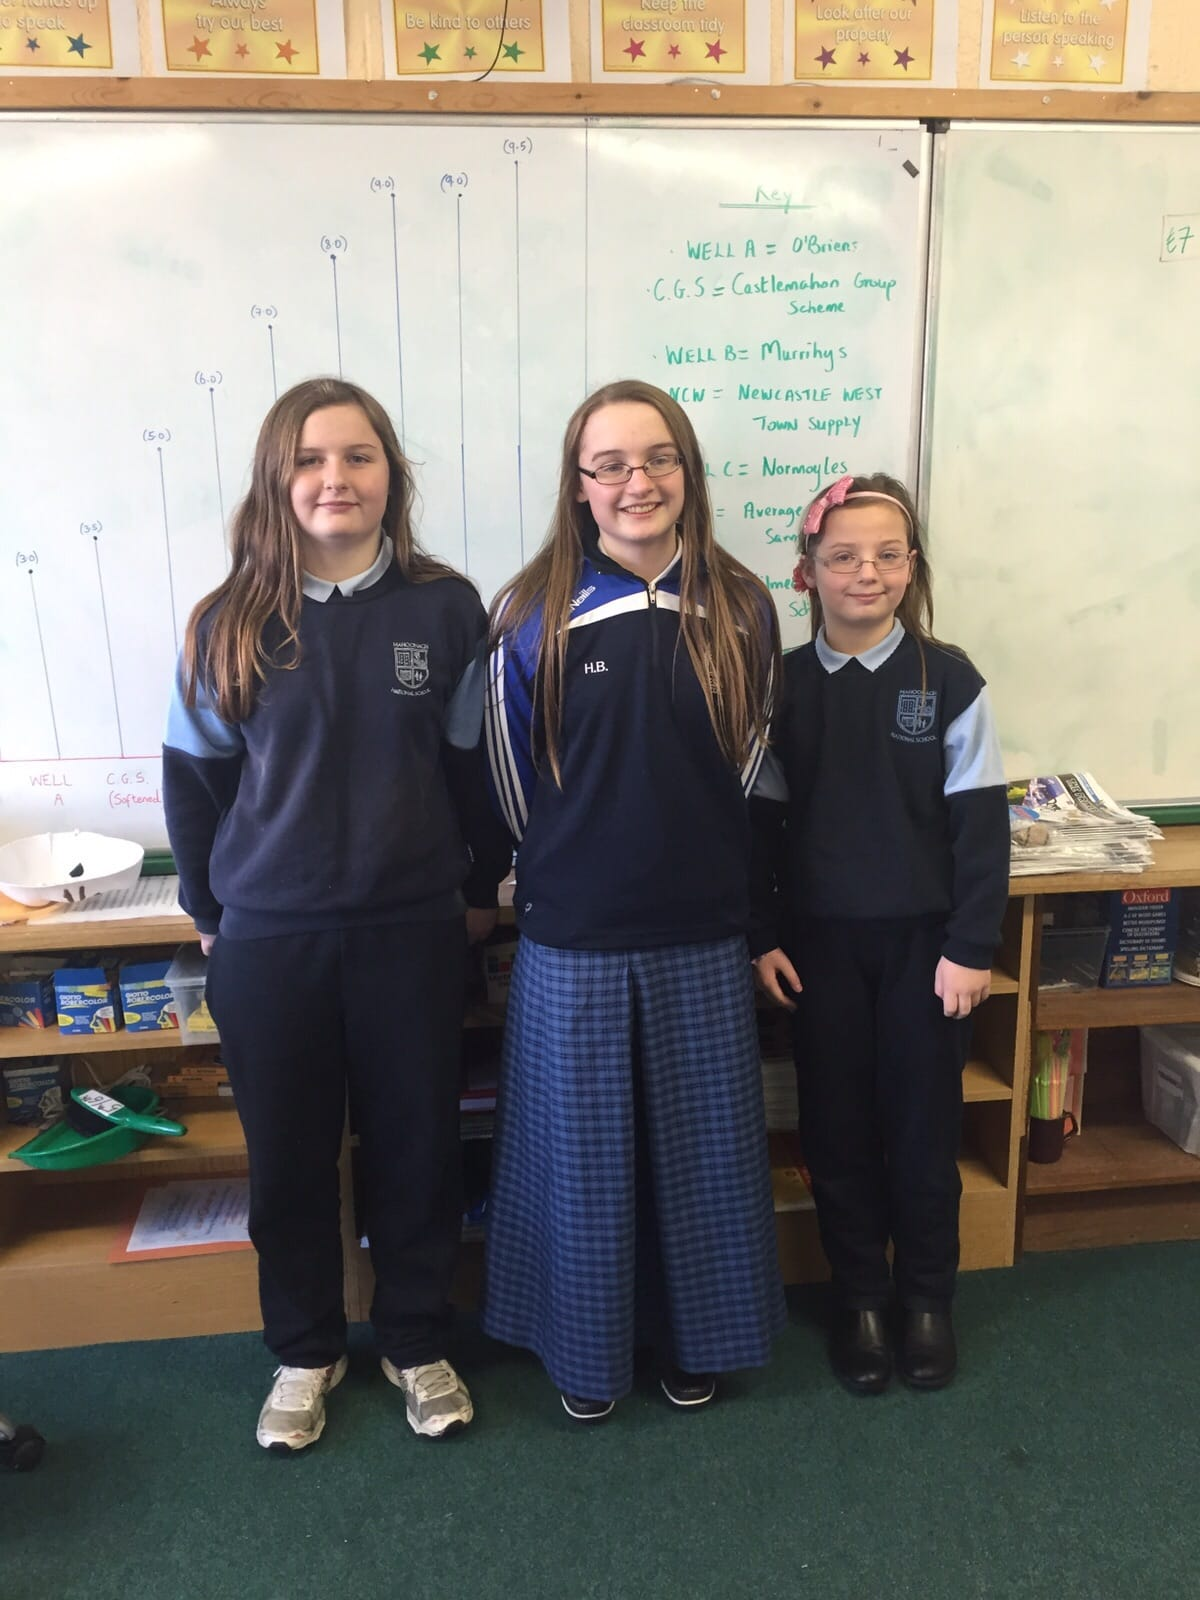 2016 Jan: Hannah Barrett Desmond College with her younger sisters on her visit to Mahoonagh National School to display her young scientist project